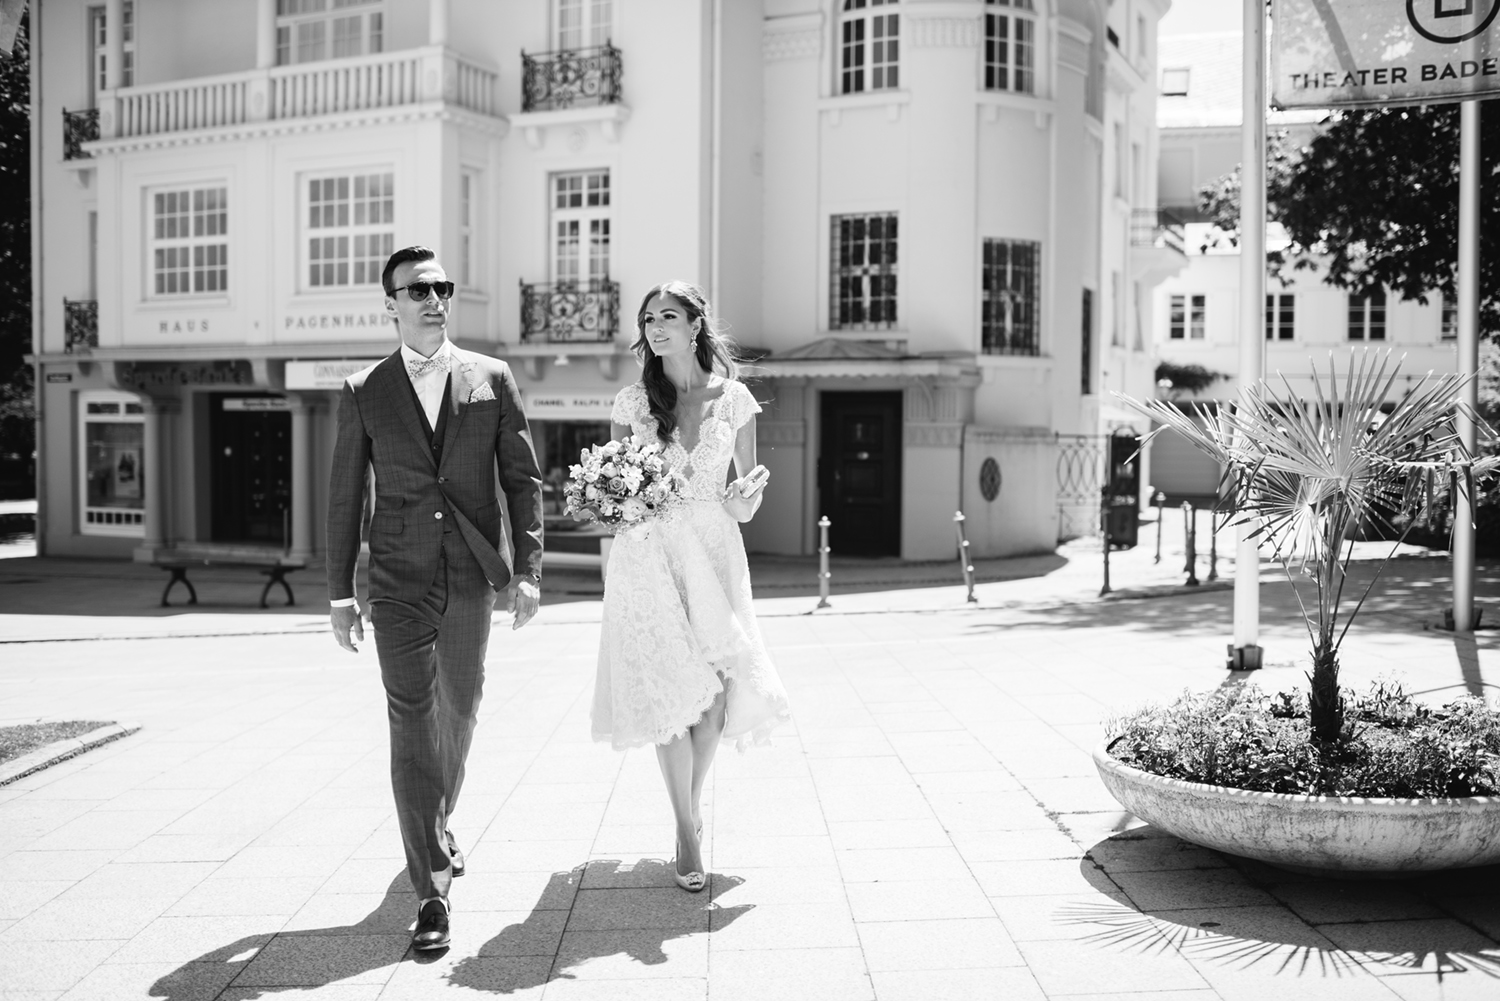 Baden-Baden-Wedding-Photographer-0058.jpg